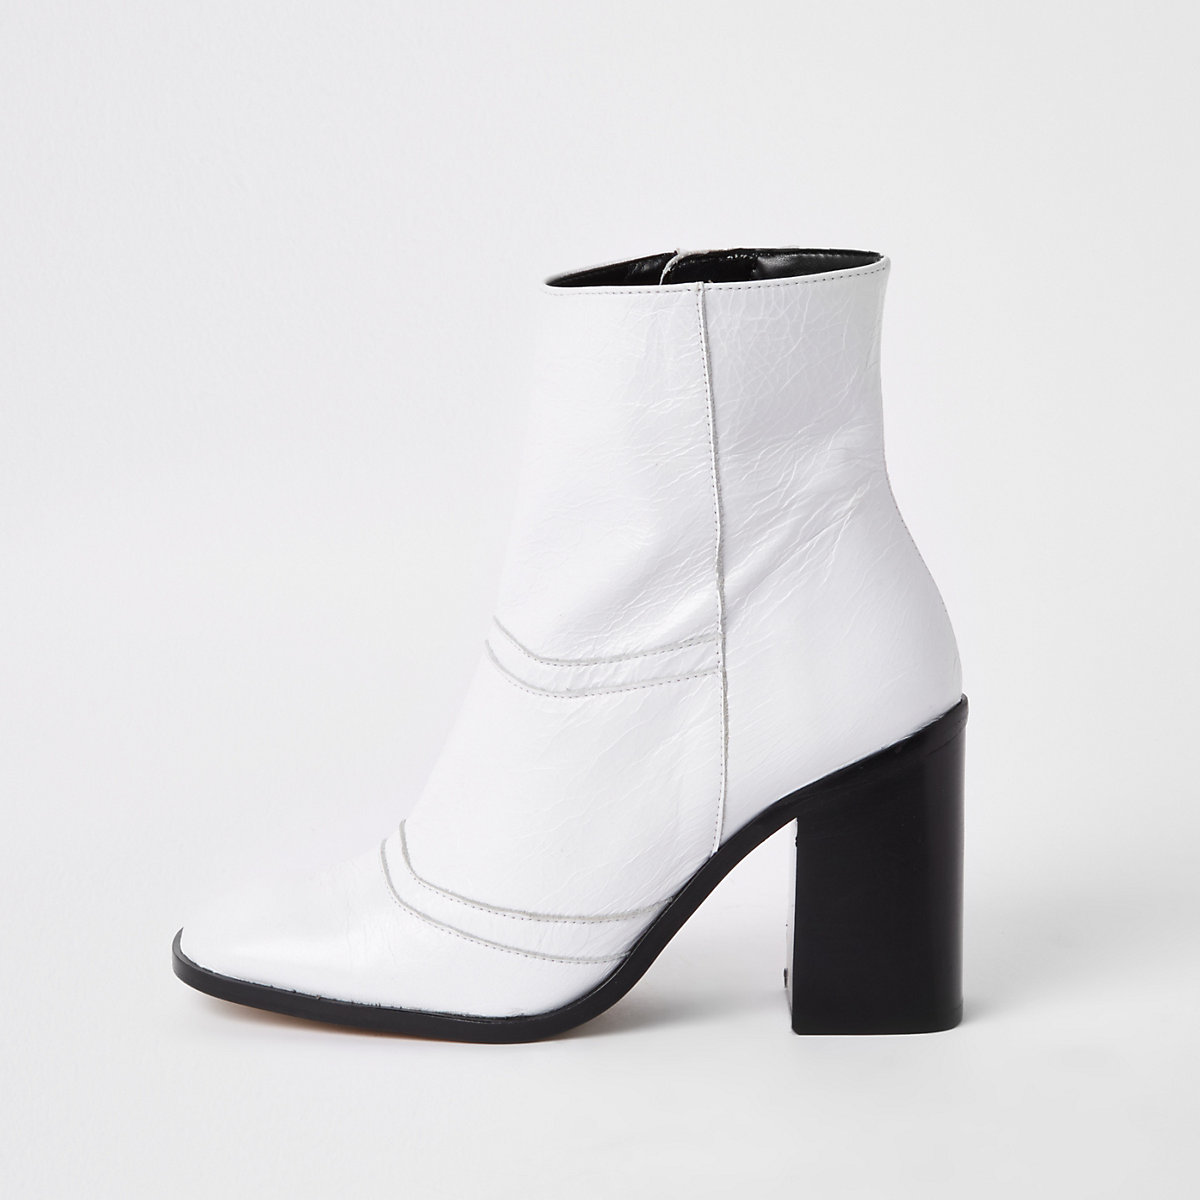 White leather square toe ankle boots